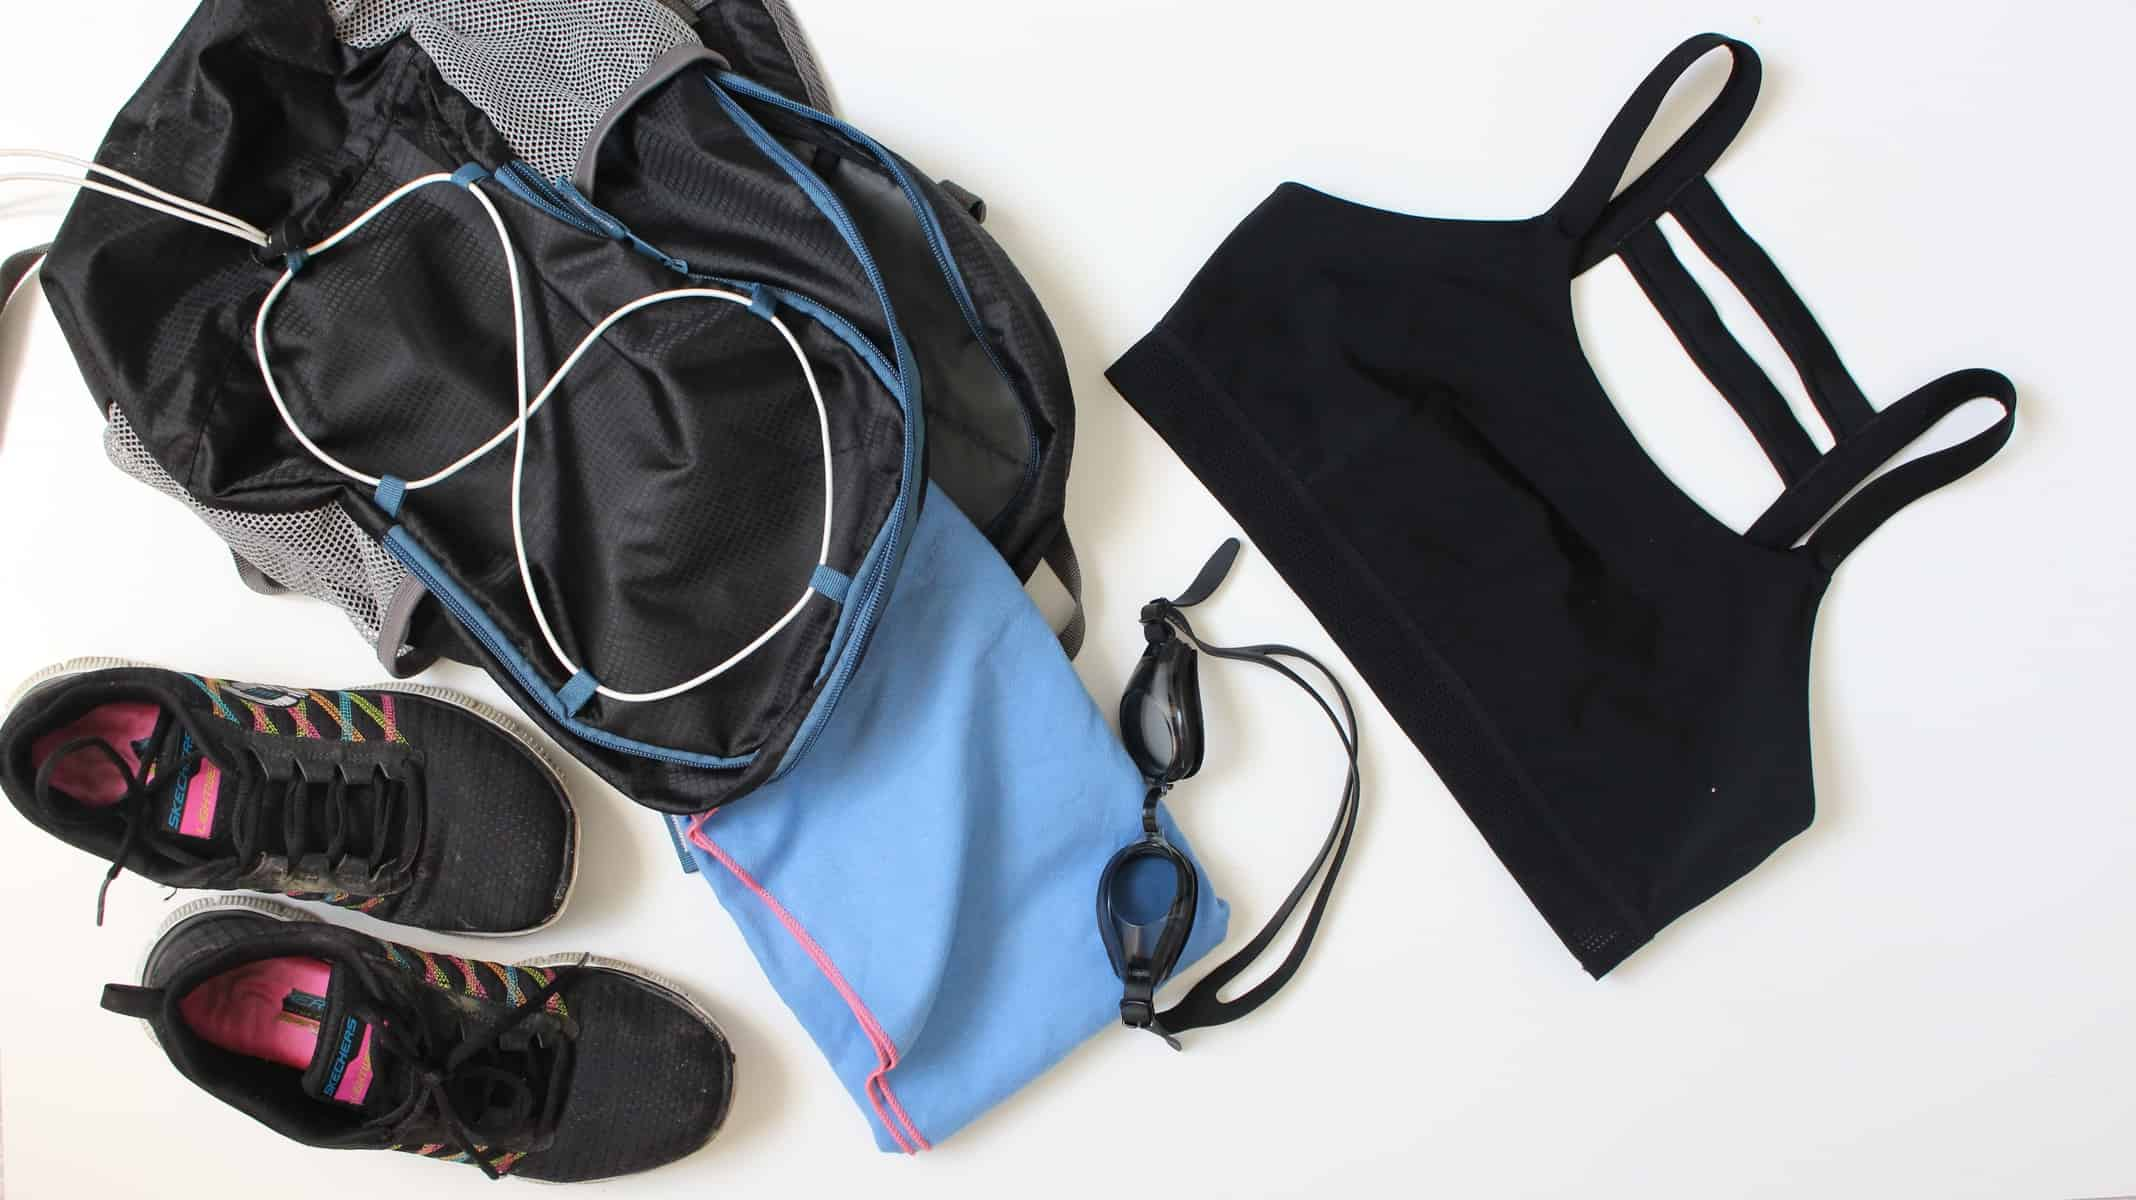 My Workout essentials for running and swimming